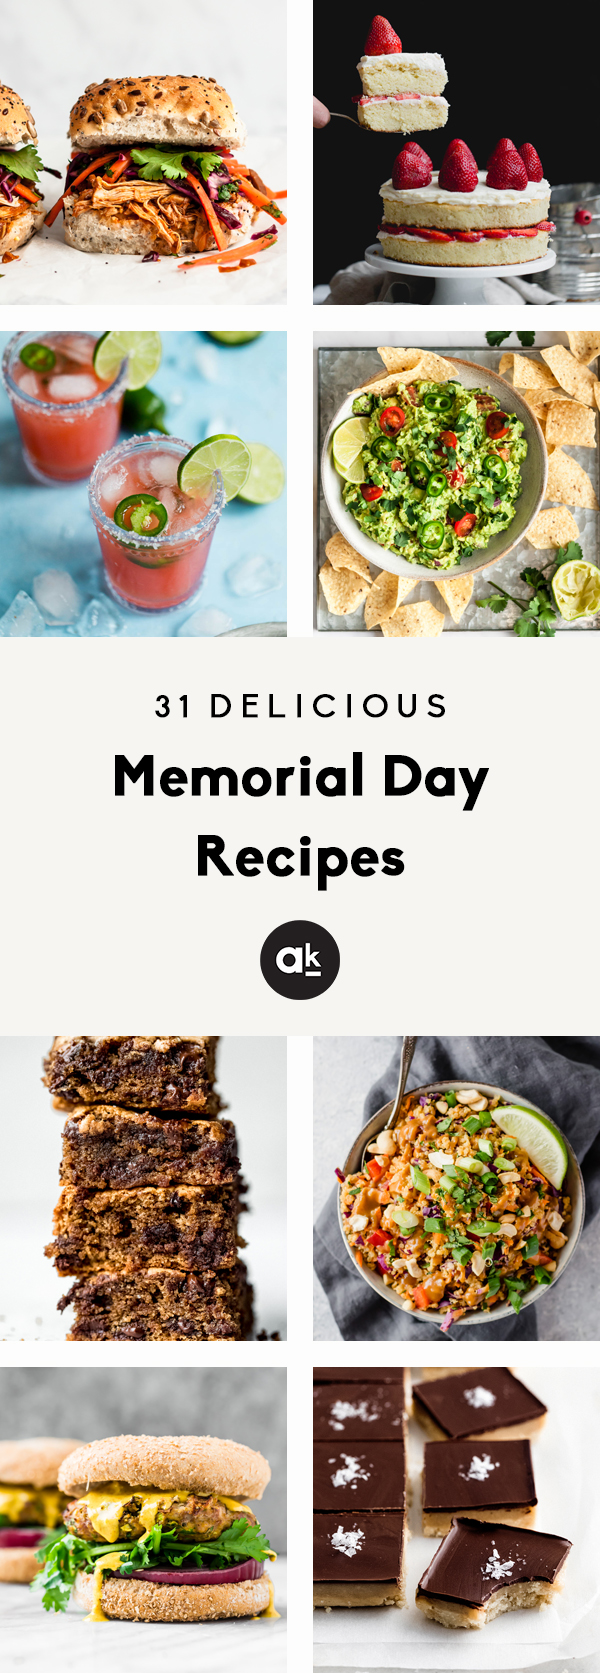 collage of memorial day recipes with text overlay